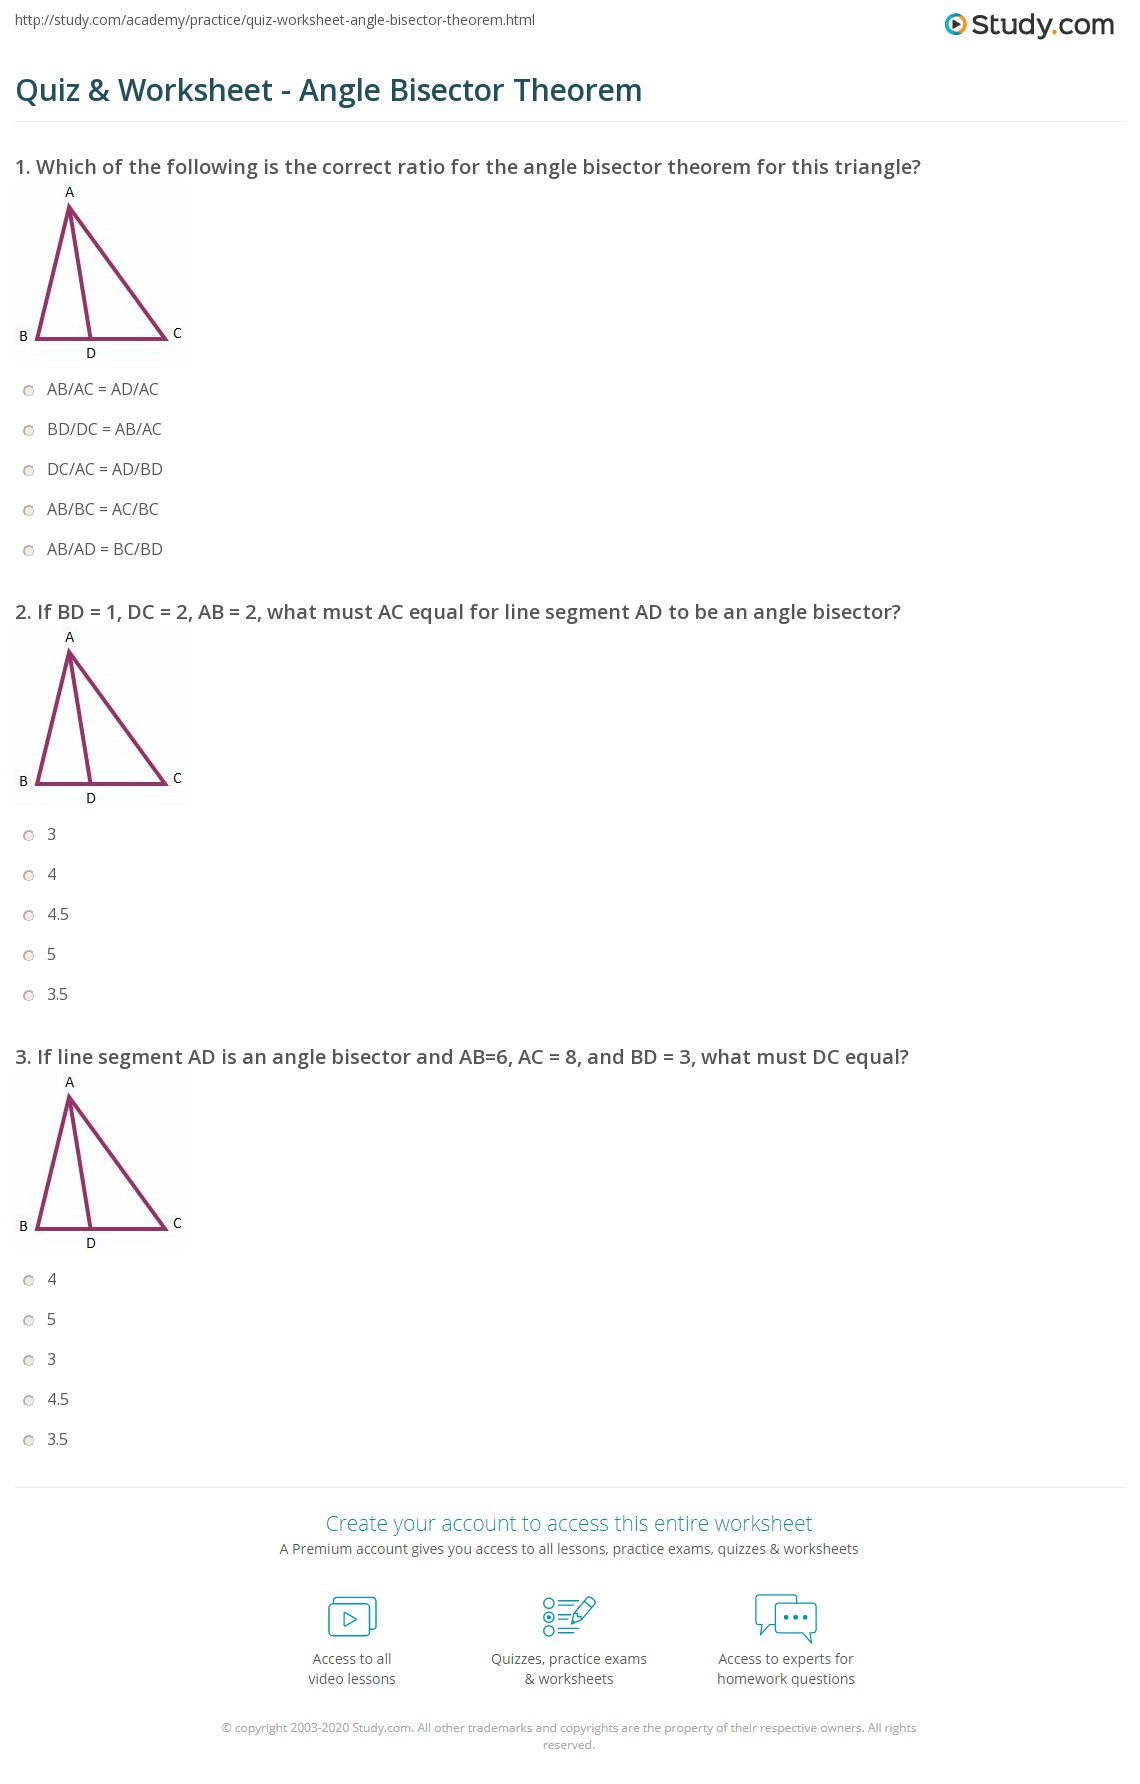 Bisecting Angles Worksheet Grade 7